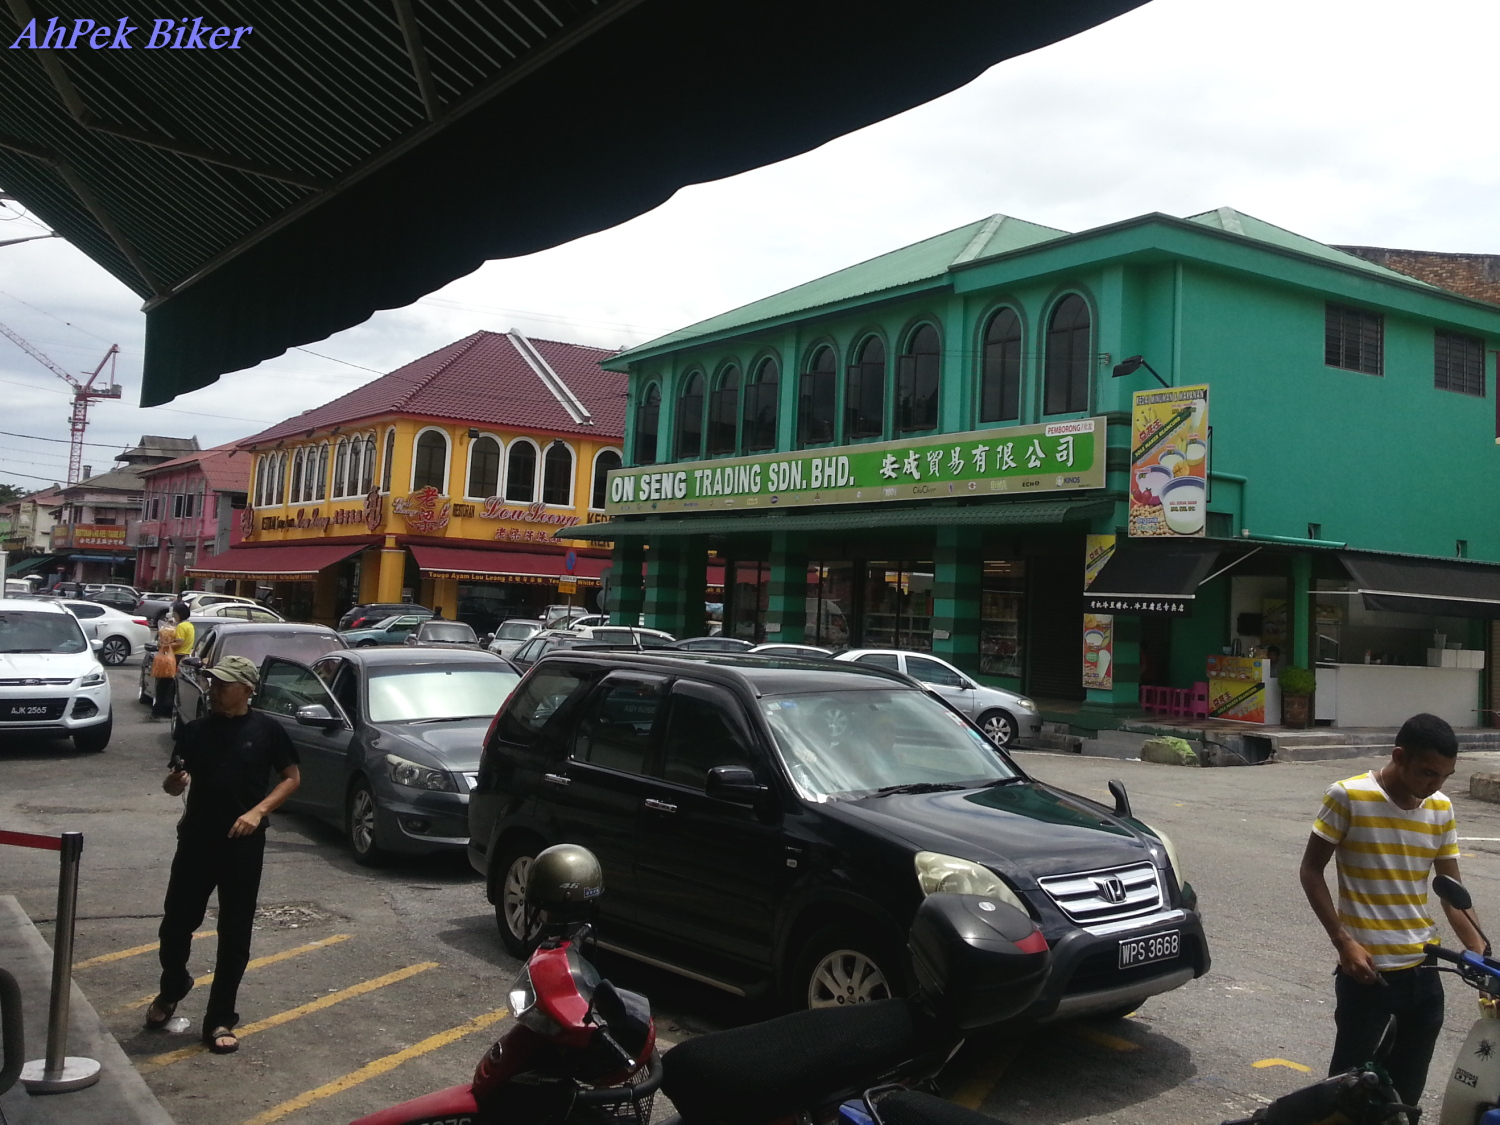 ipoh indian dating Delicious malaysian food menu from ipoh town barangaroo order today from order-in.